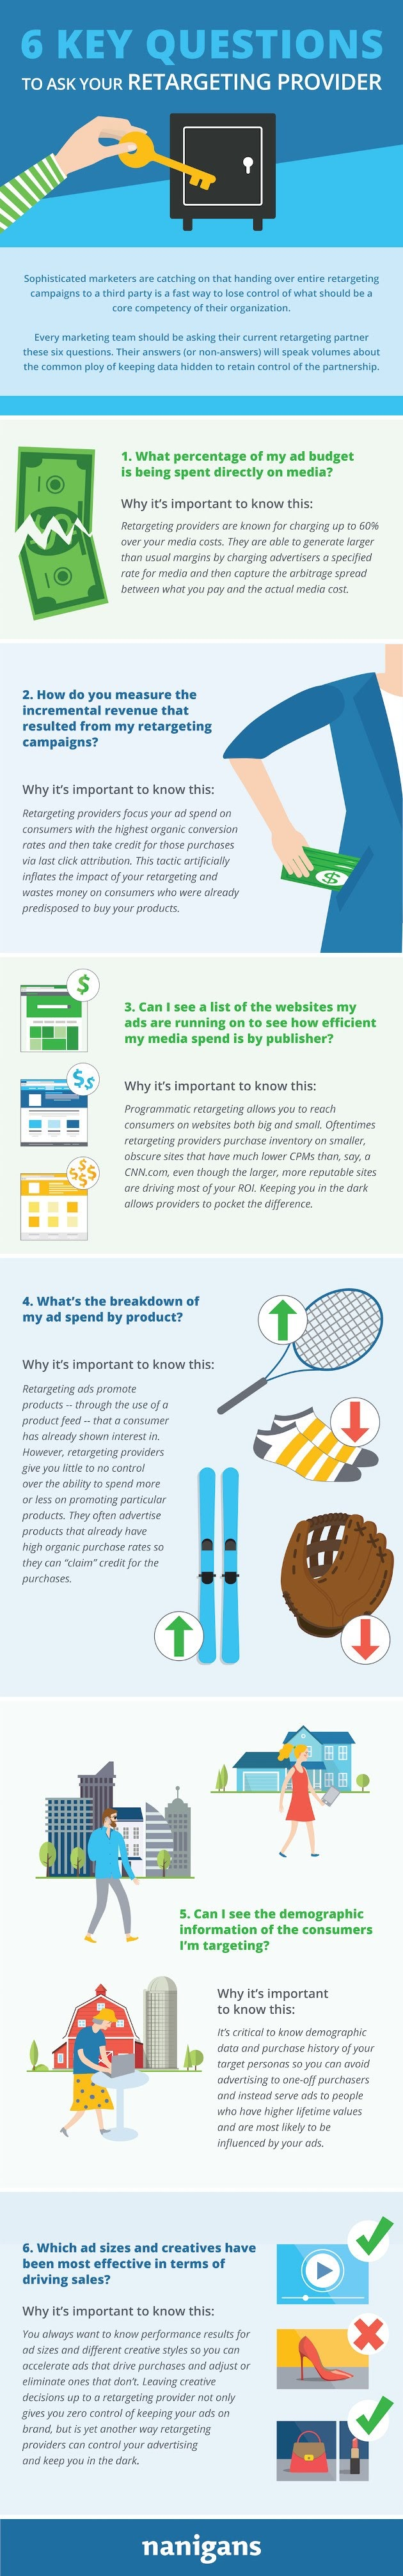 6 Key Questions to Ask Your Retargeting Provider - #Infographic